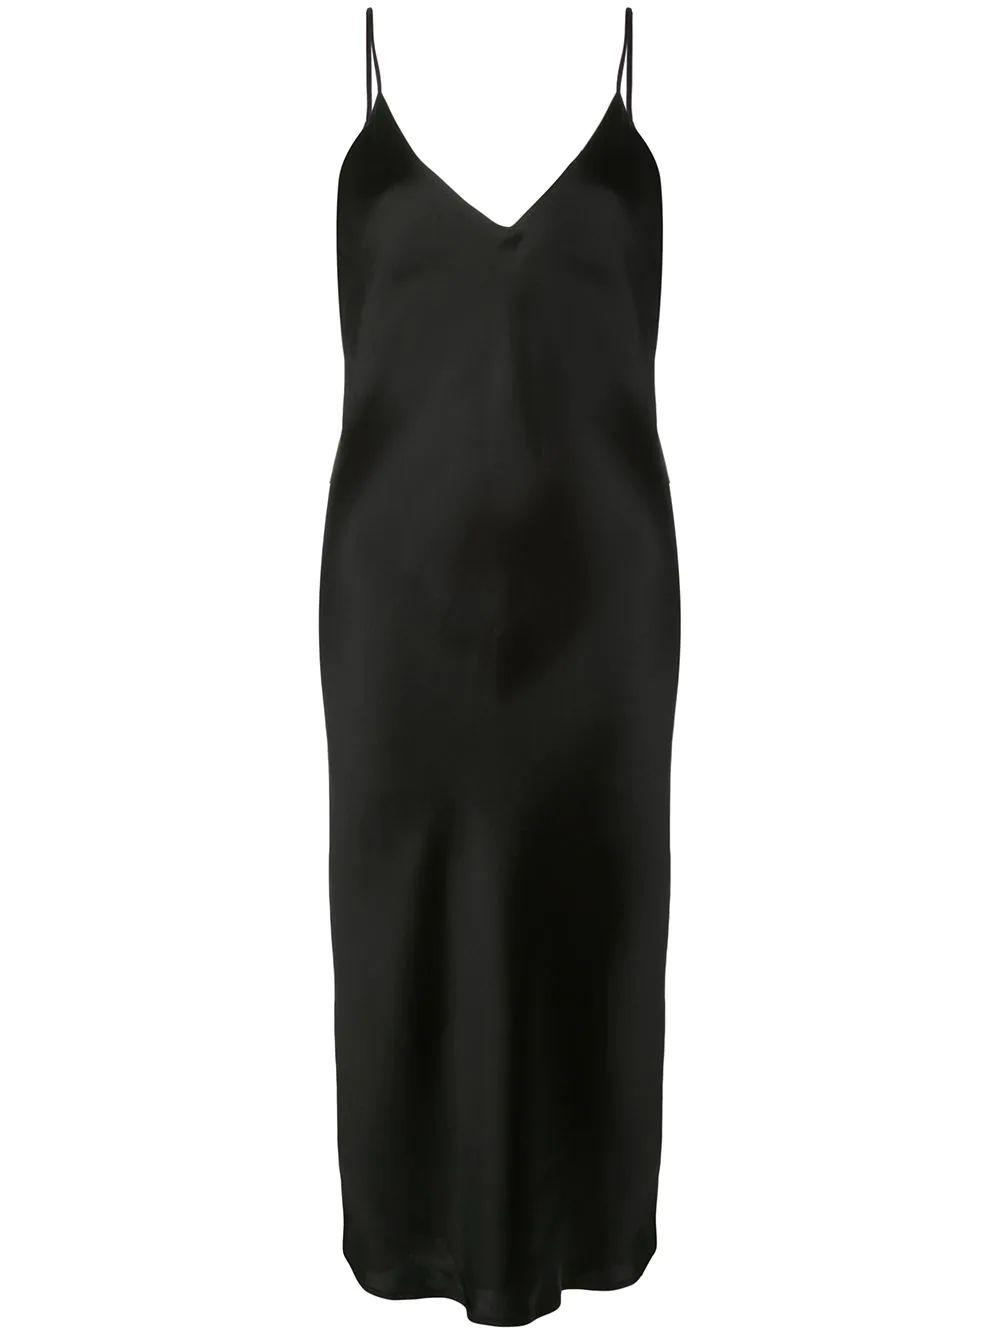 Jodie Vee Neck Slip Dress